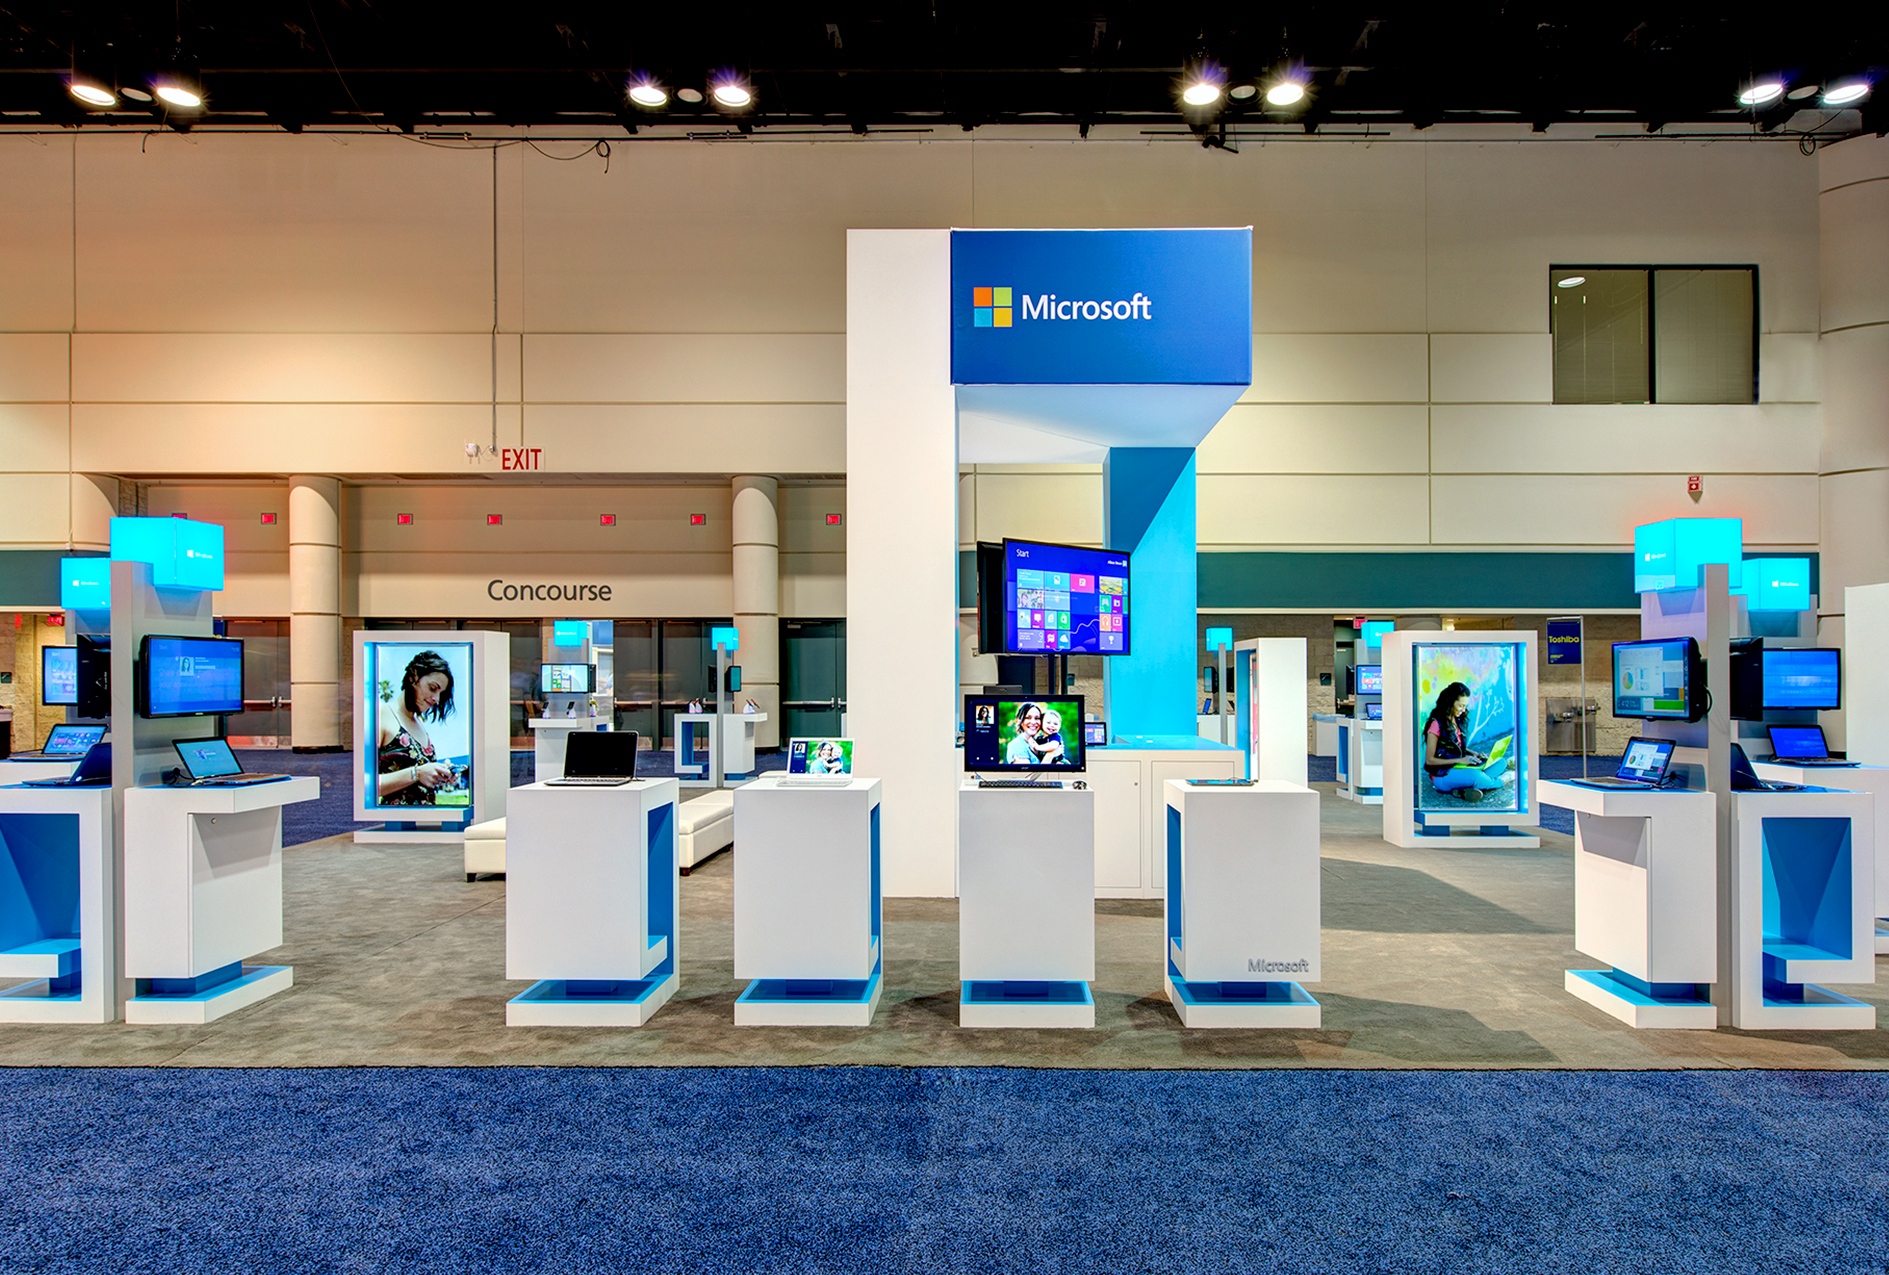 Windows Trade Show Booth -ImagiCorps created a compelling and modular exhibit with demo stations and presentation spaces to showcase the full breadth of Microsoft's products.